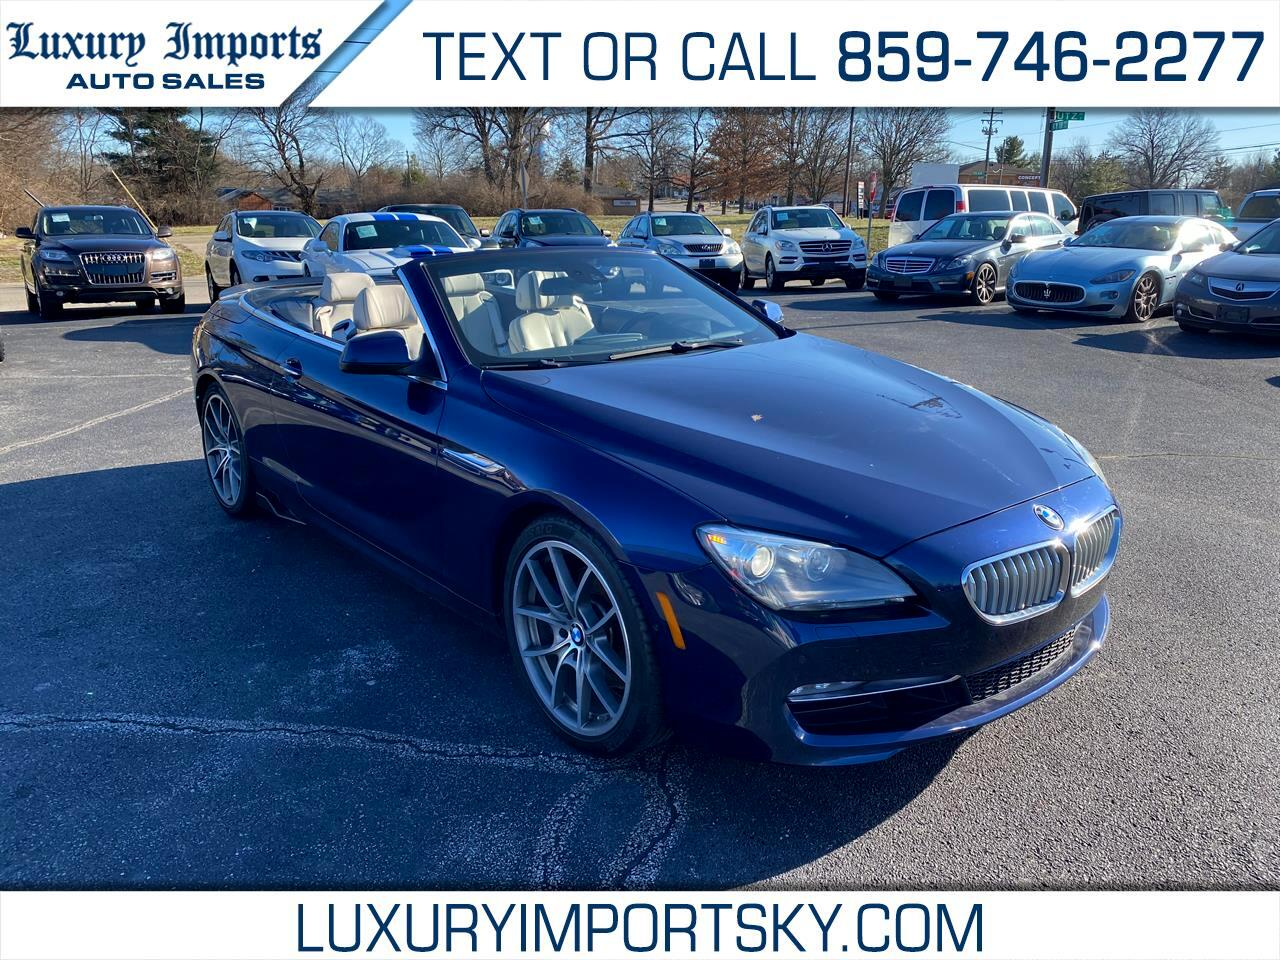 2012 BMW 6 Series 2dr Conv 650i